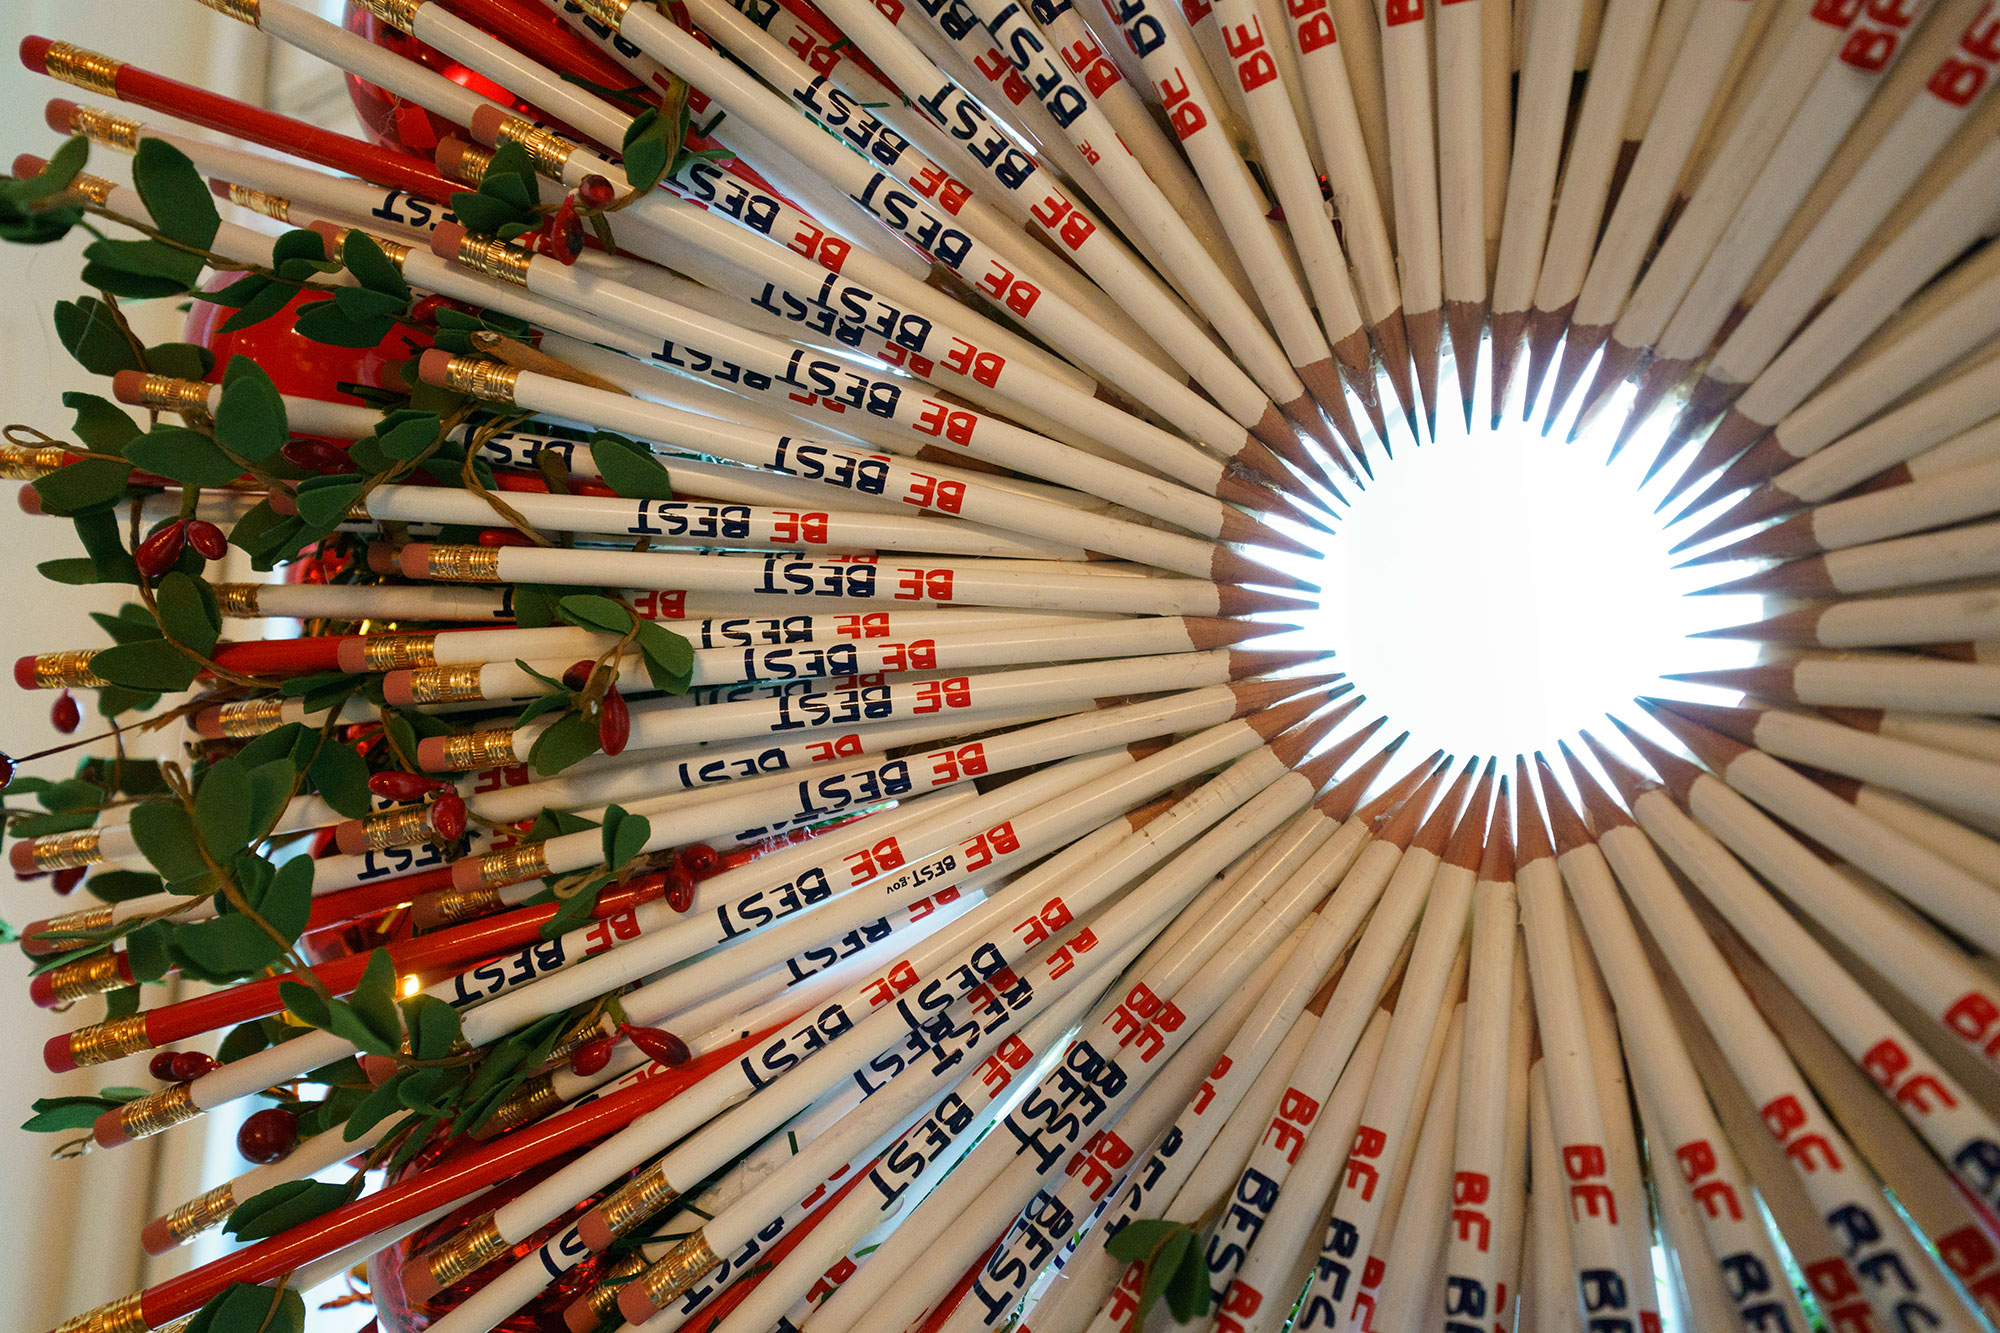 <div class='meta'><div class='origin-logo' data-origin='none'></div><span class='caption-text' data-credit='Carolyn Kaster/AP Photo'>A wreath made of &#34;Be Best&#34; pencils is seen in the Red Room during a 2018 Christmas preview at the White House in Washington, Monday, Nov. 26, 2018.</span></div>